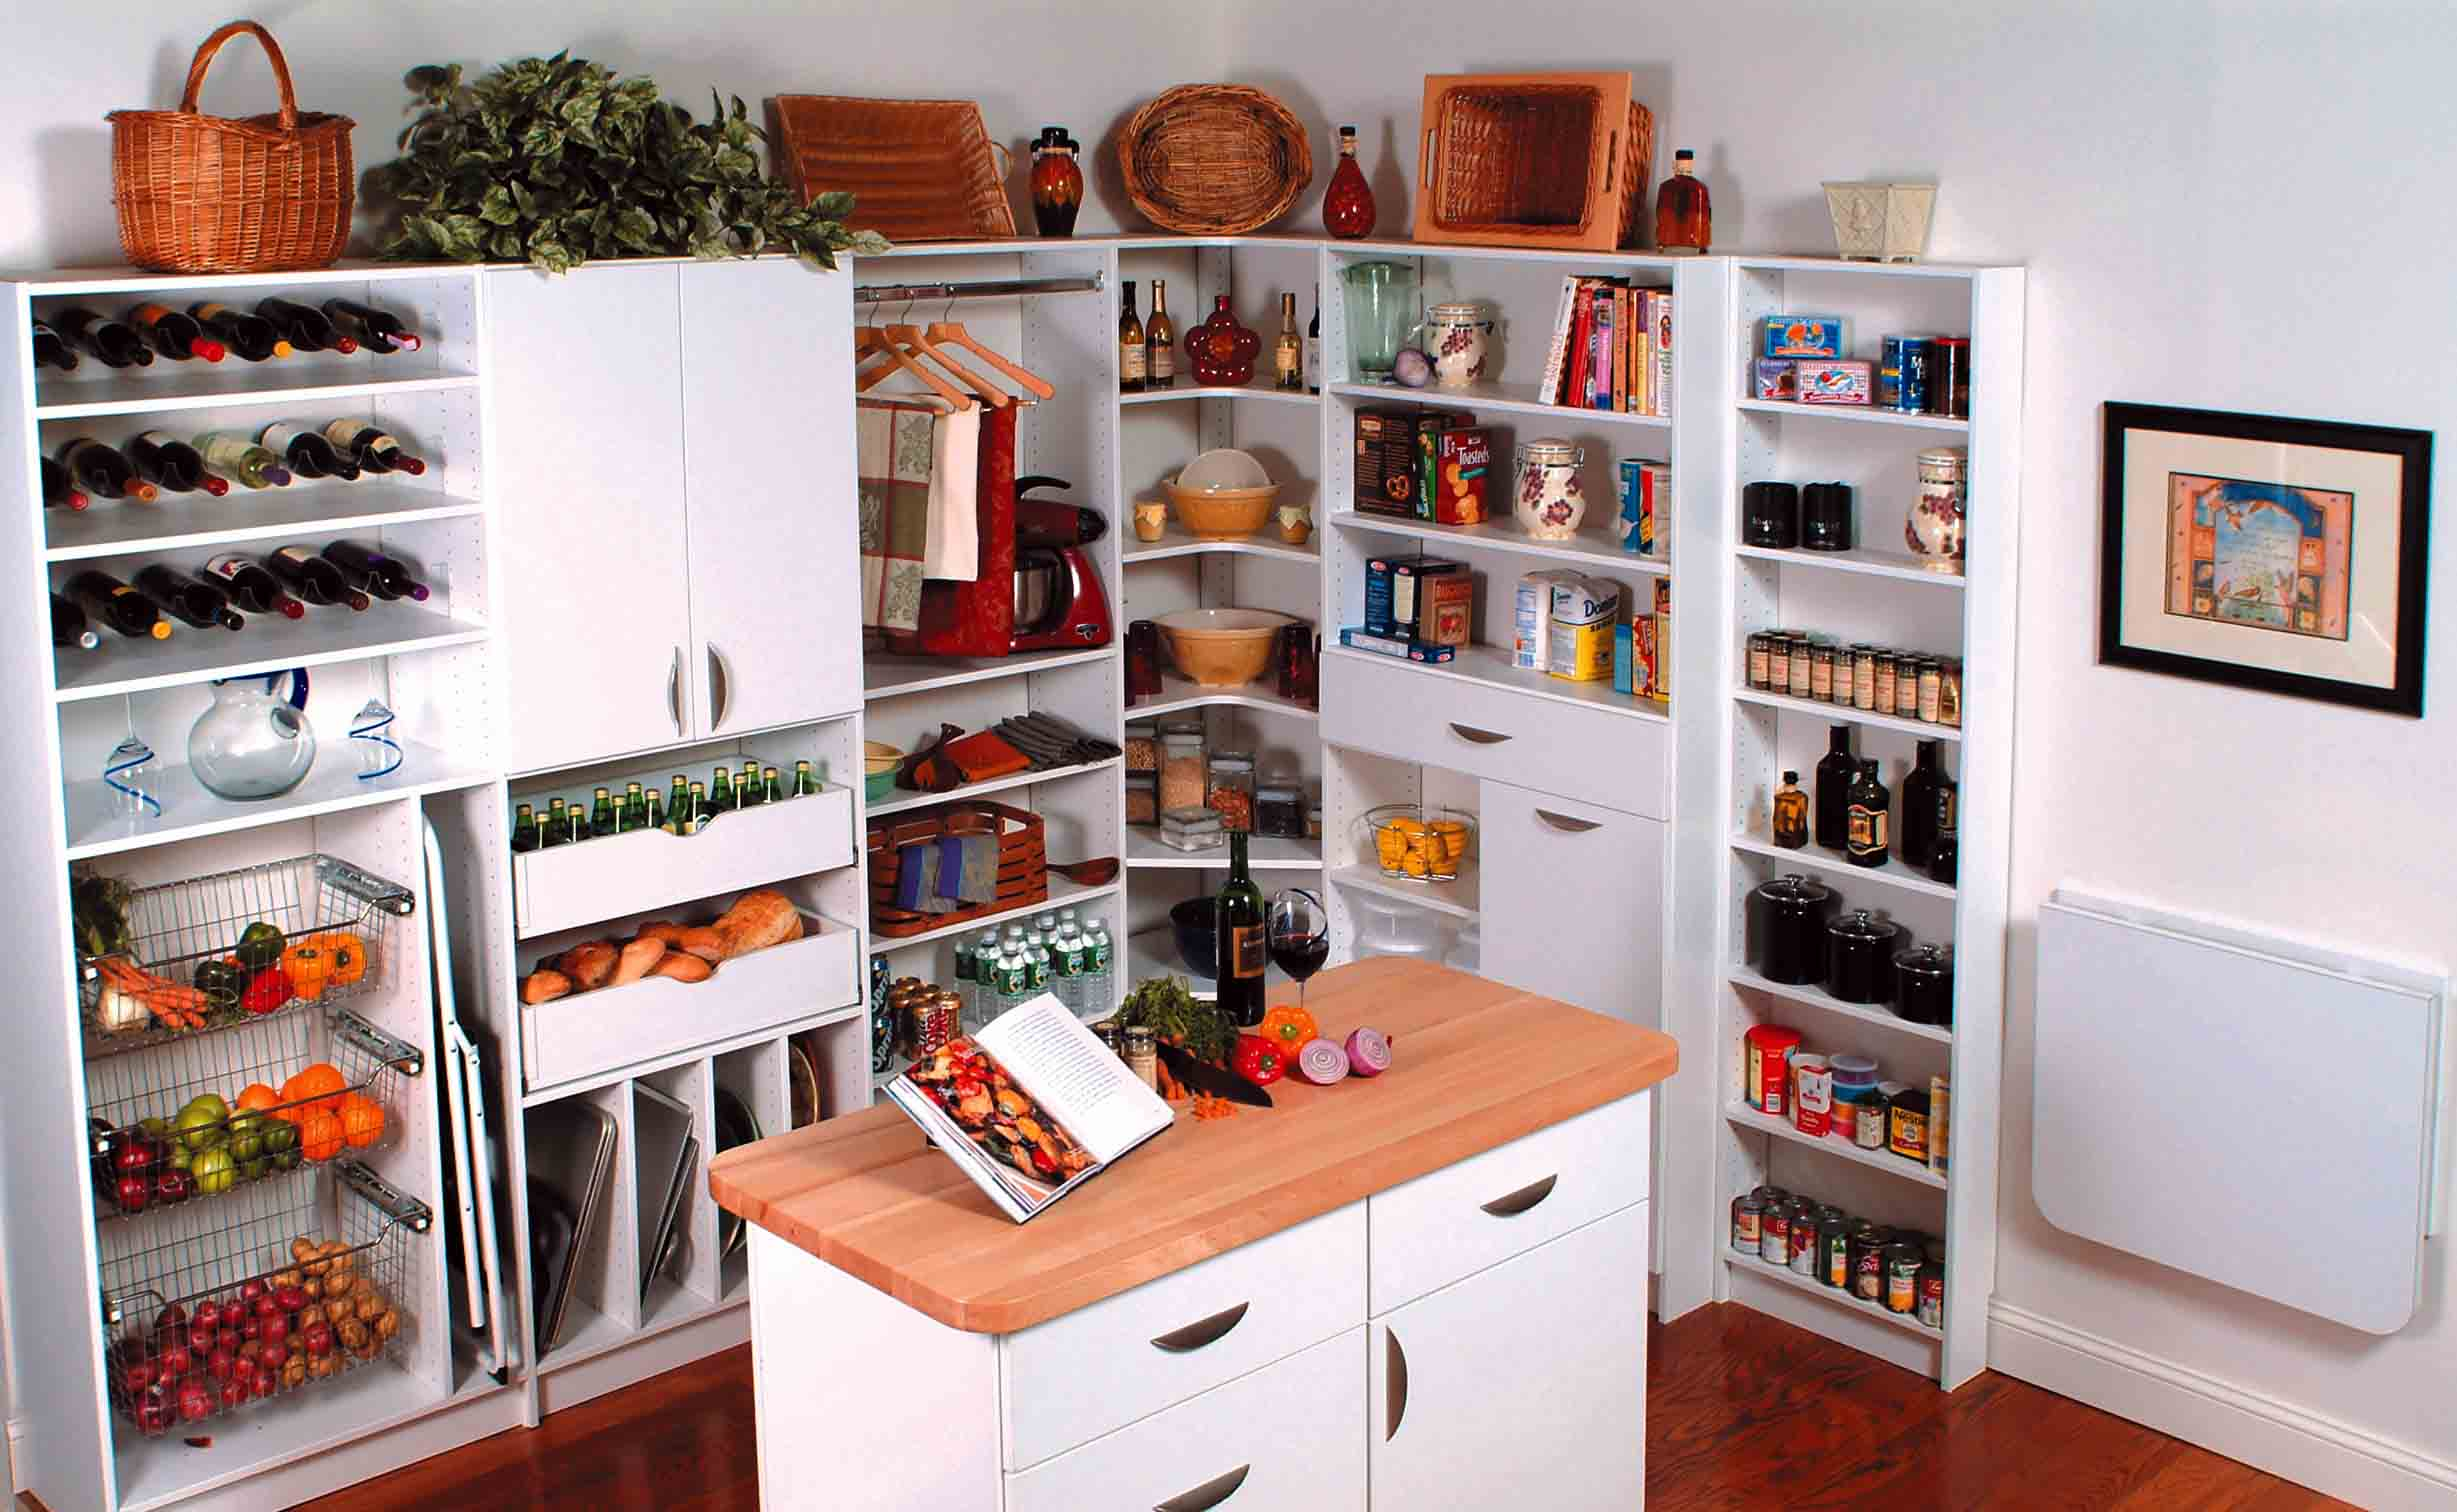 5 Strategies to Keep Your Pantry Organized Once & For All